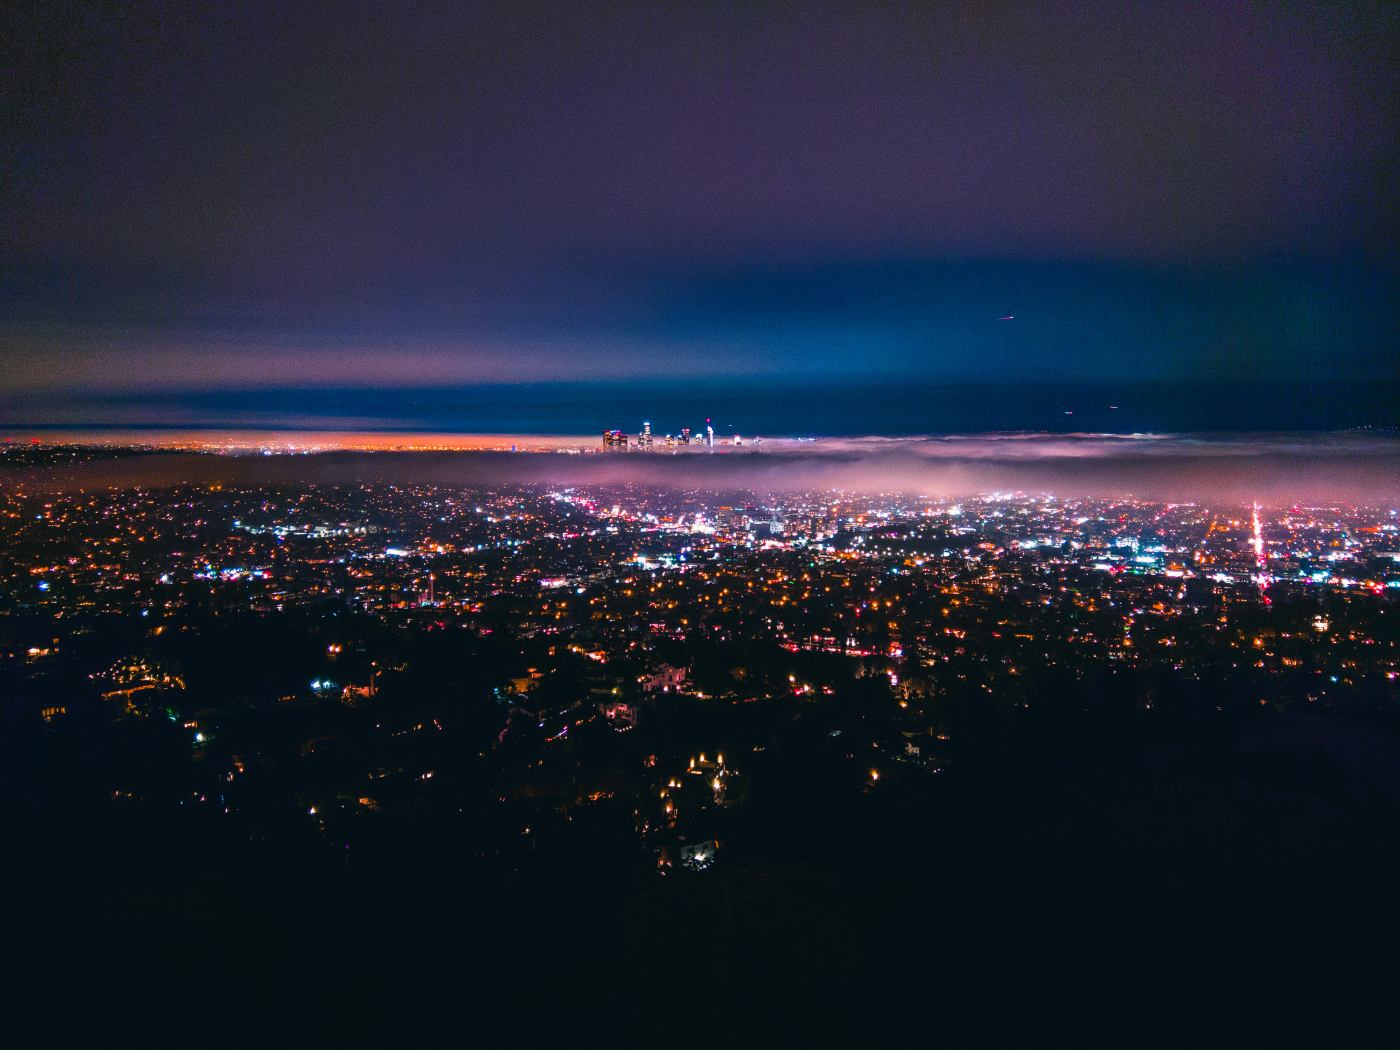 Los Angeles from Griffith Observatory. HTC U11. 1s, f/1.7, ISO 100